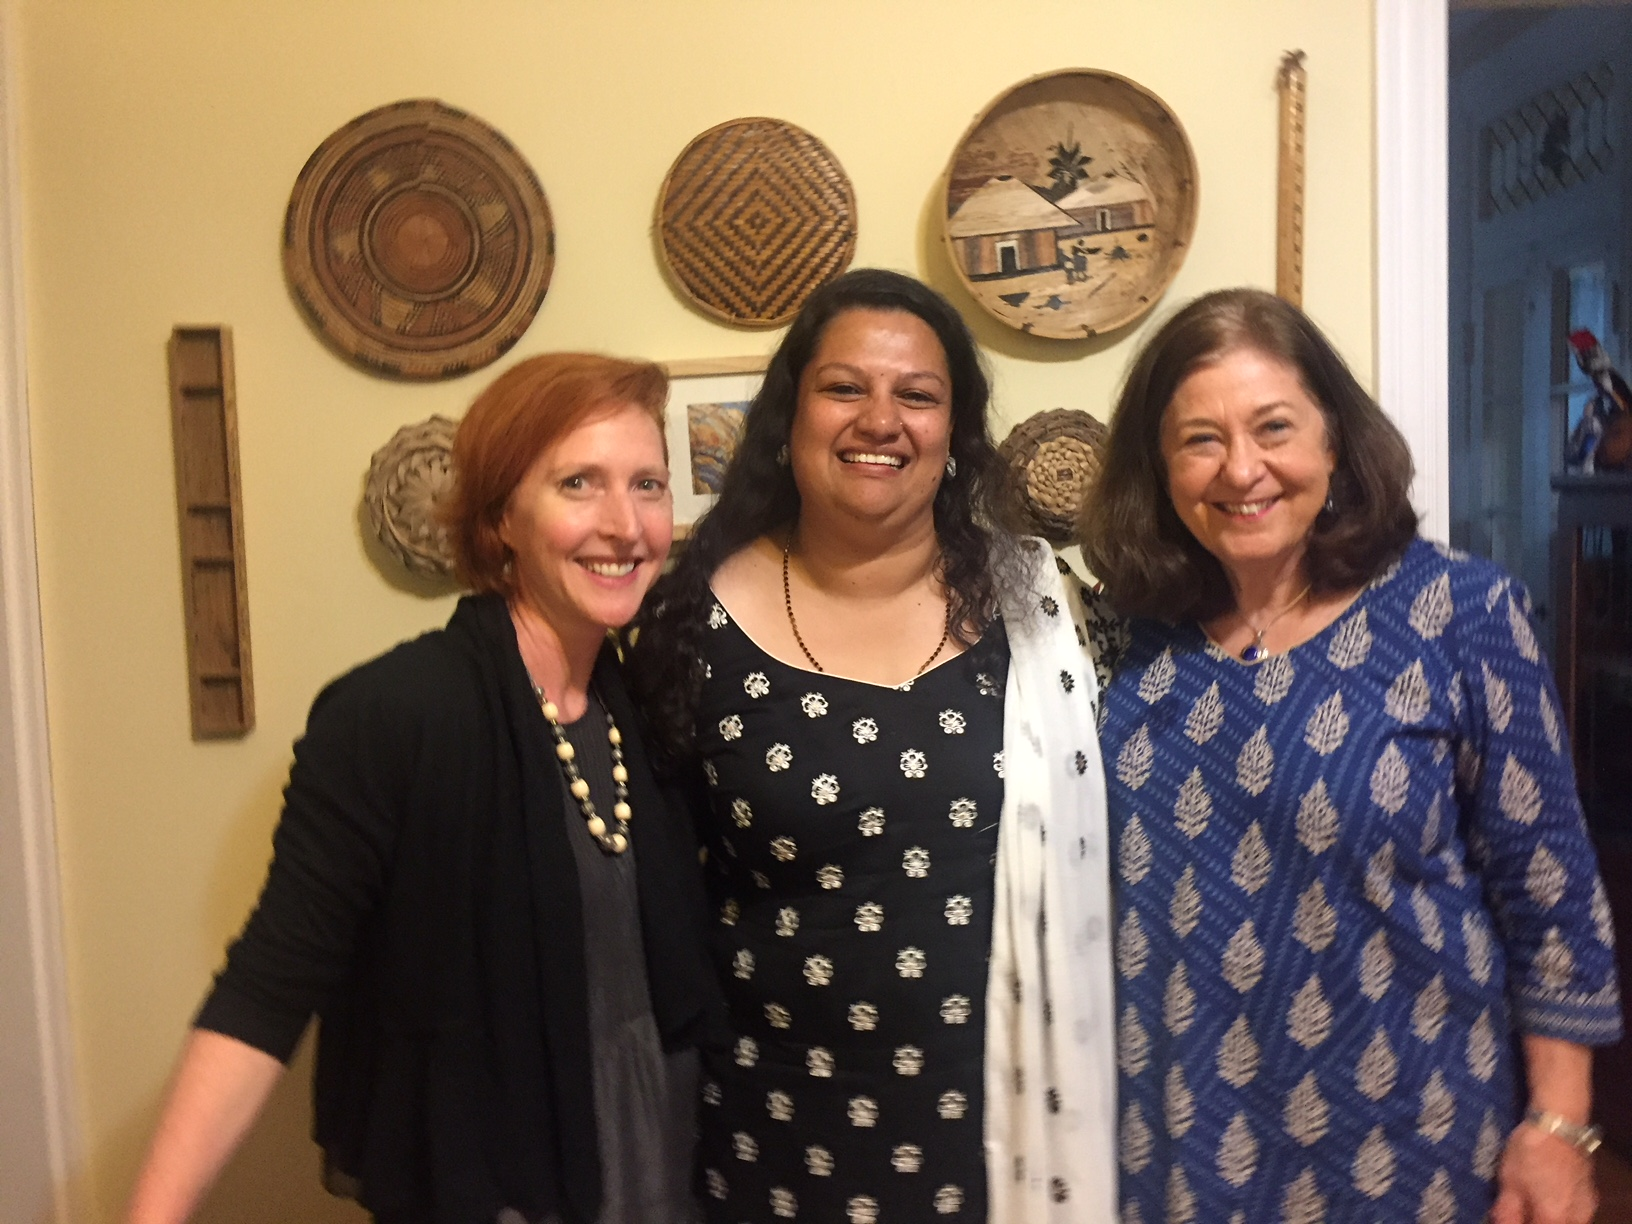 Filmaker and child sponsor Amy Benson with Leena and Nancy in St. Louis, MO